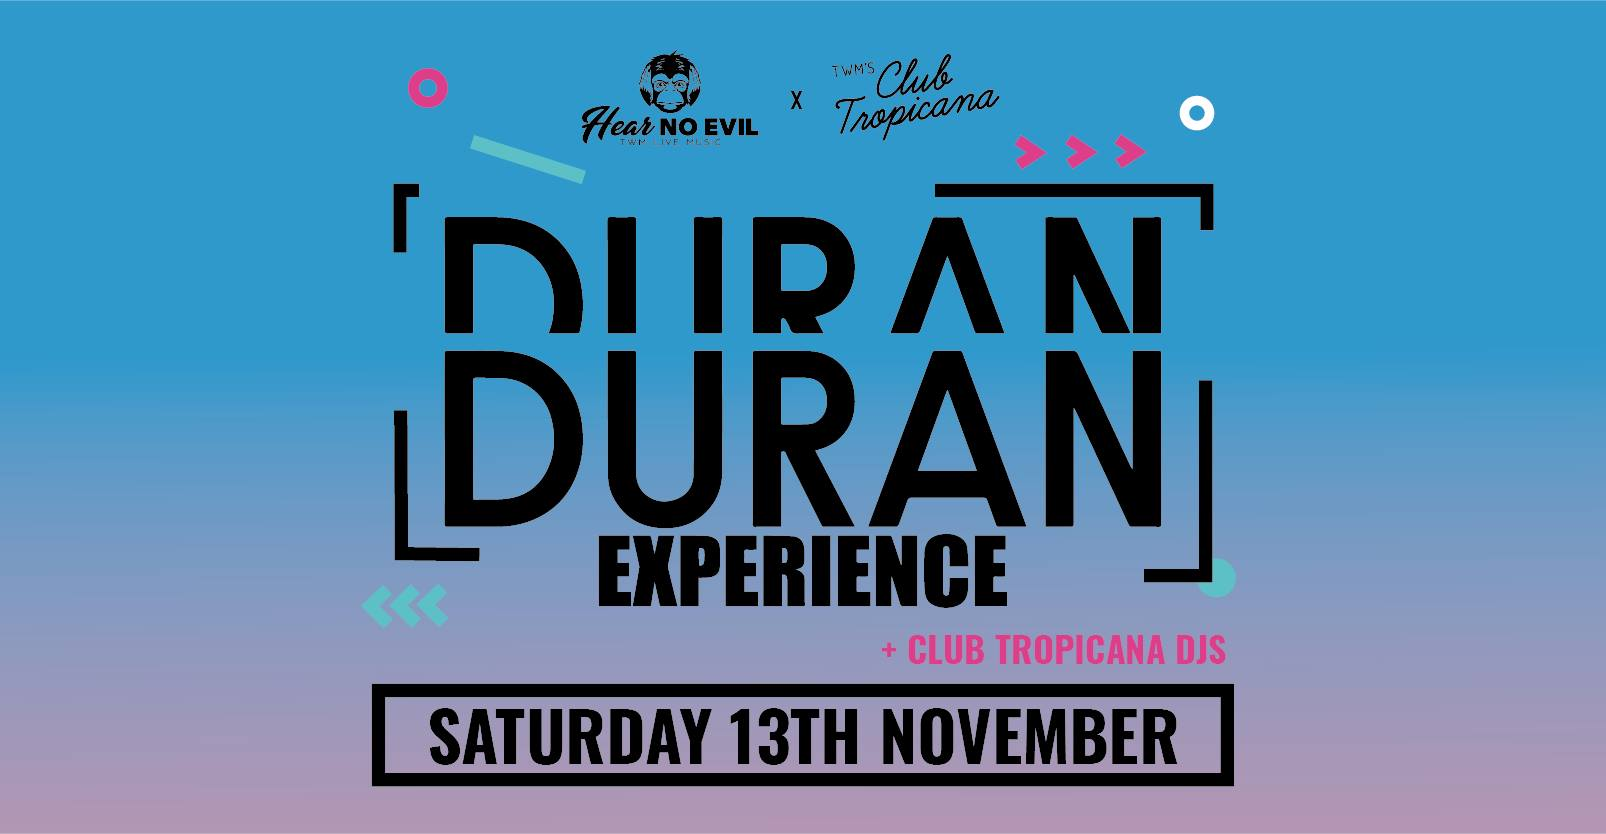 The Duran Duran Experience At Three Wise Monkeys